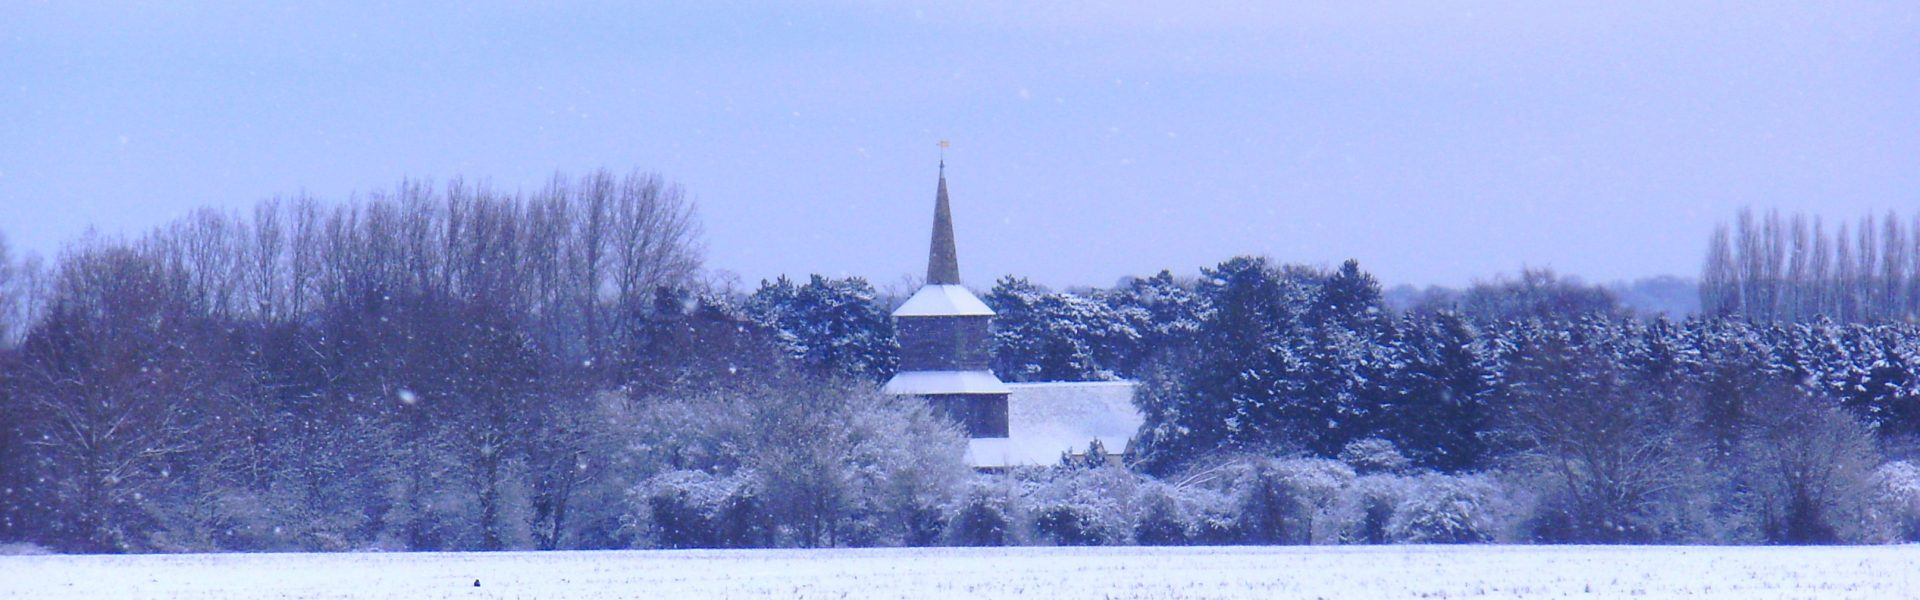 A snowy view across open farm land towards the bell tower of St Laurence church.